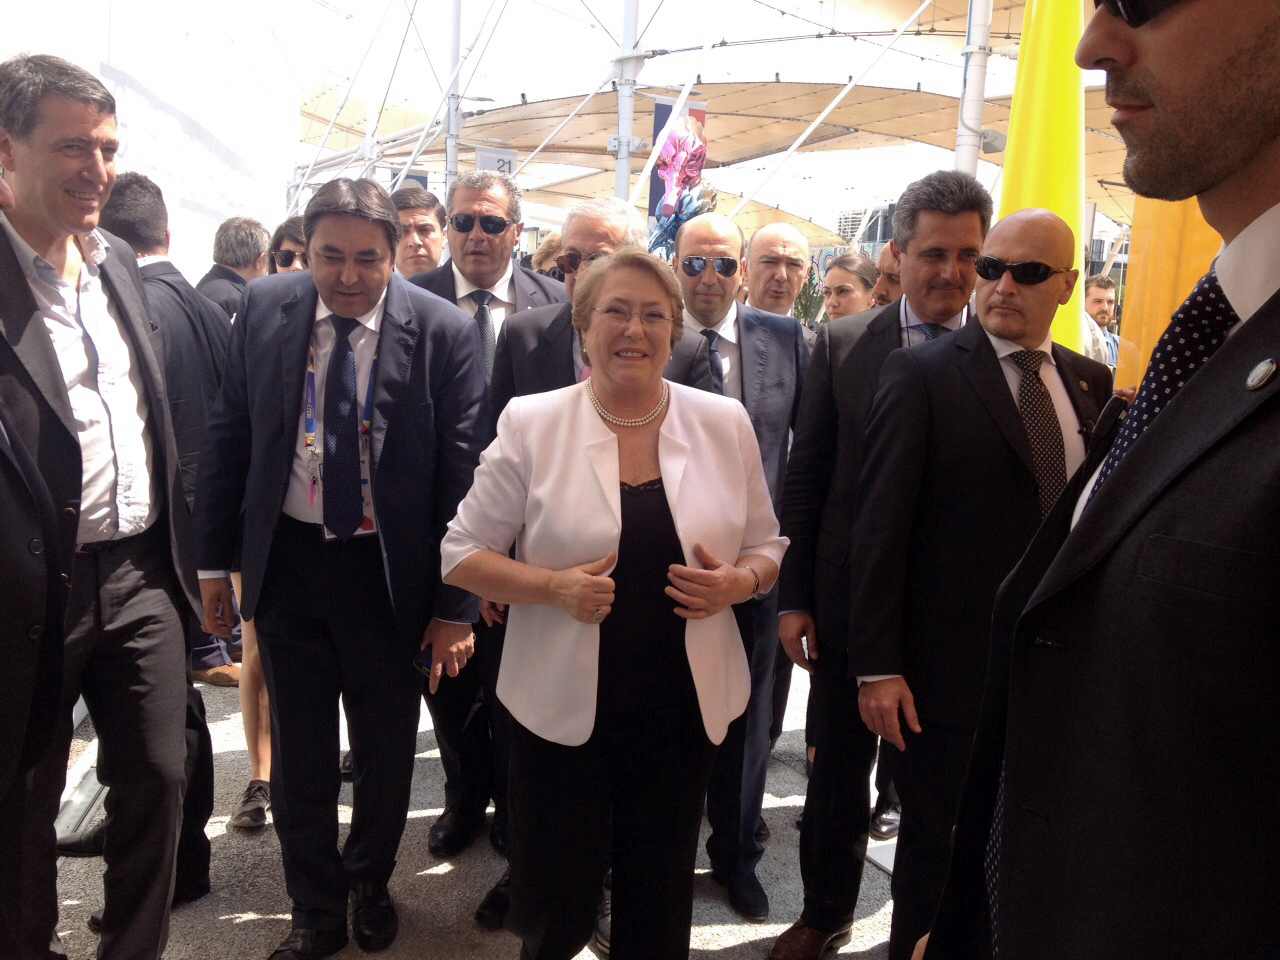 President of Chile Michelle Bachelet at Expo Milan 2015